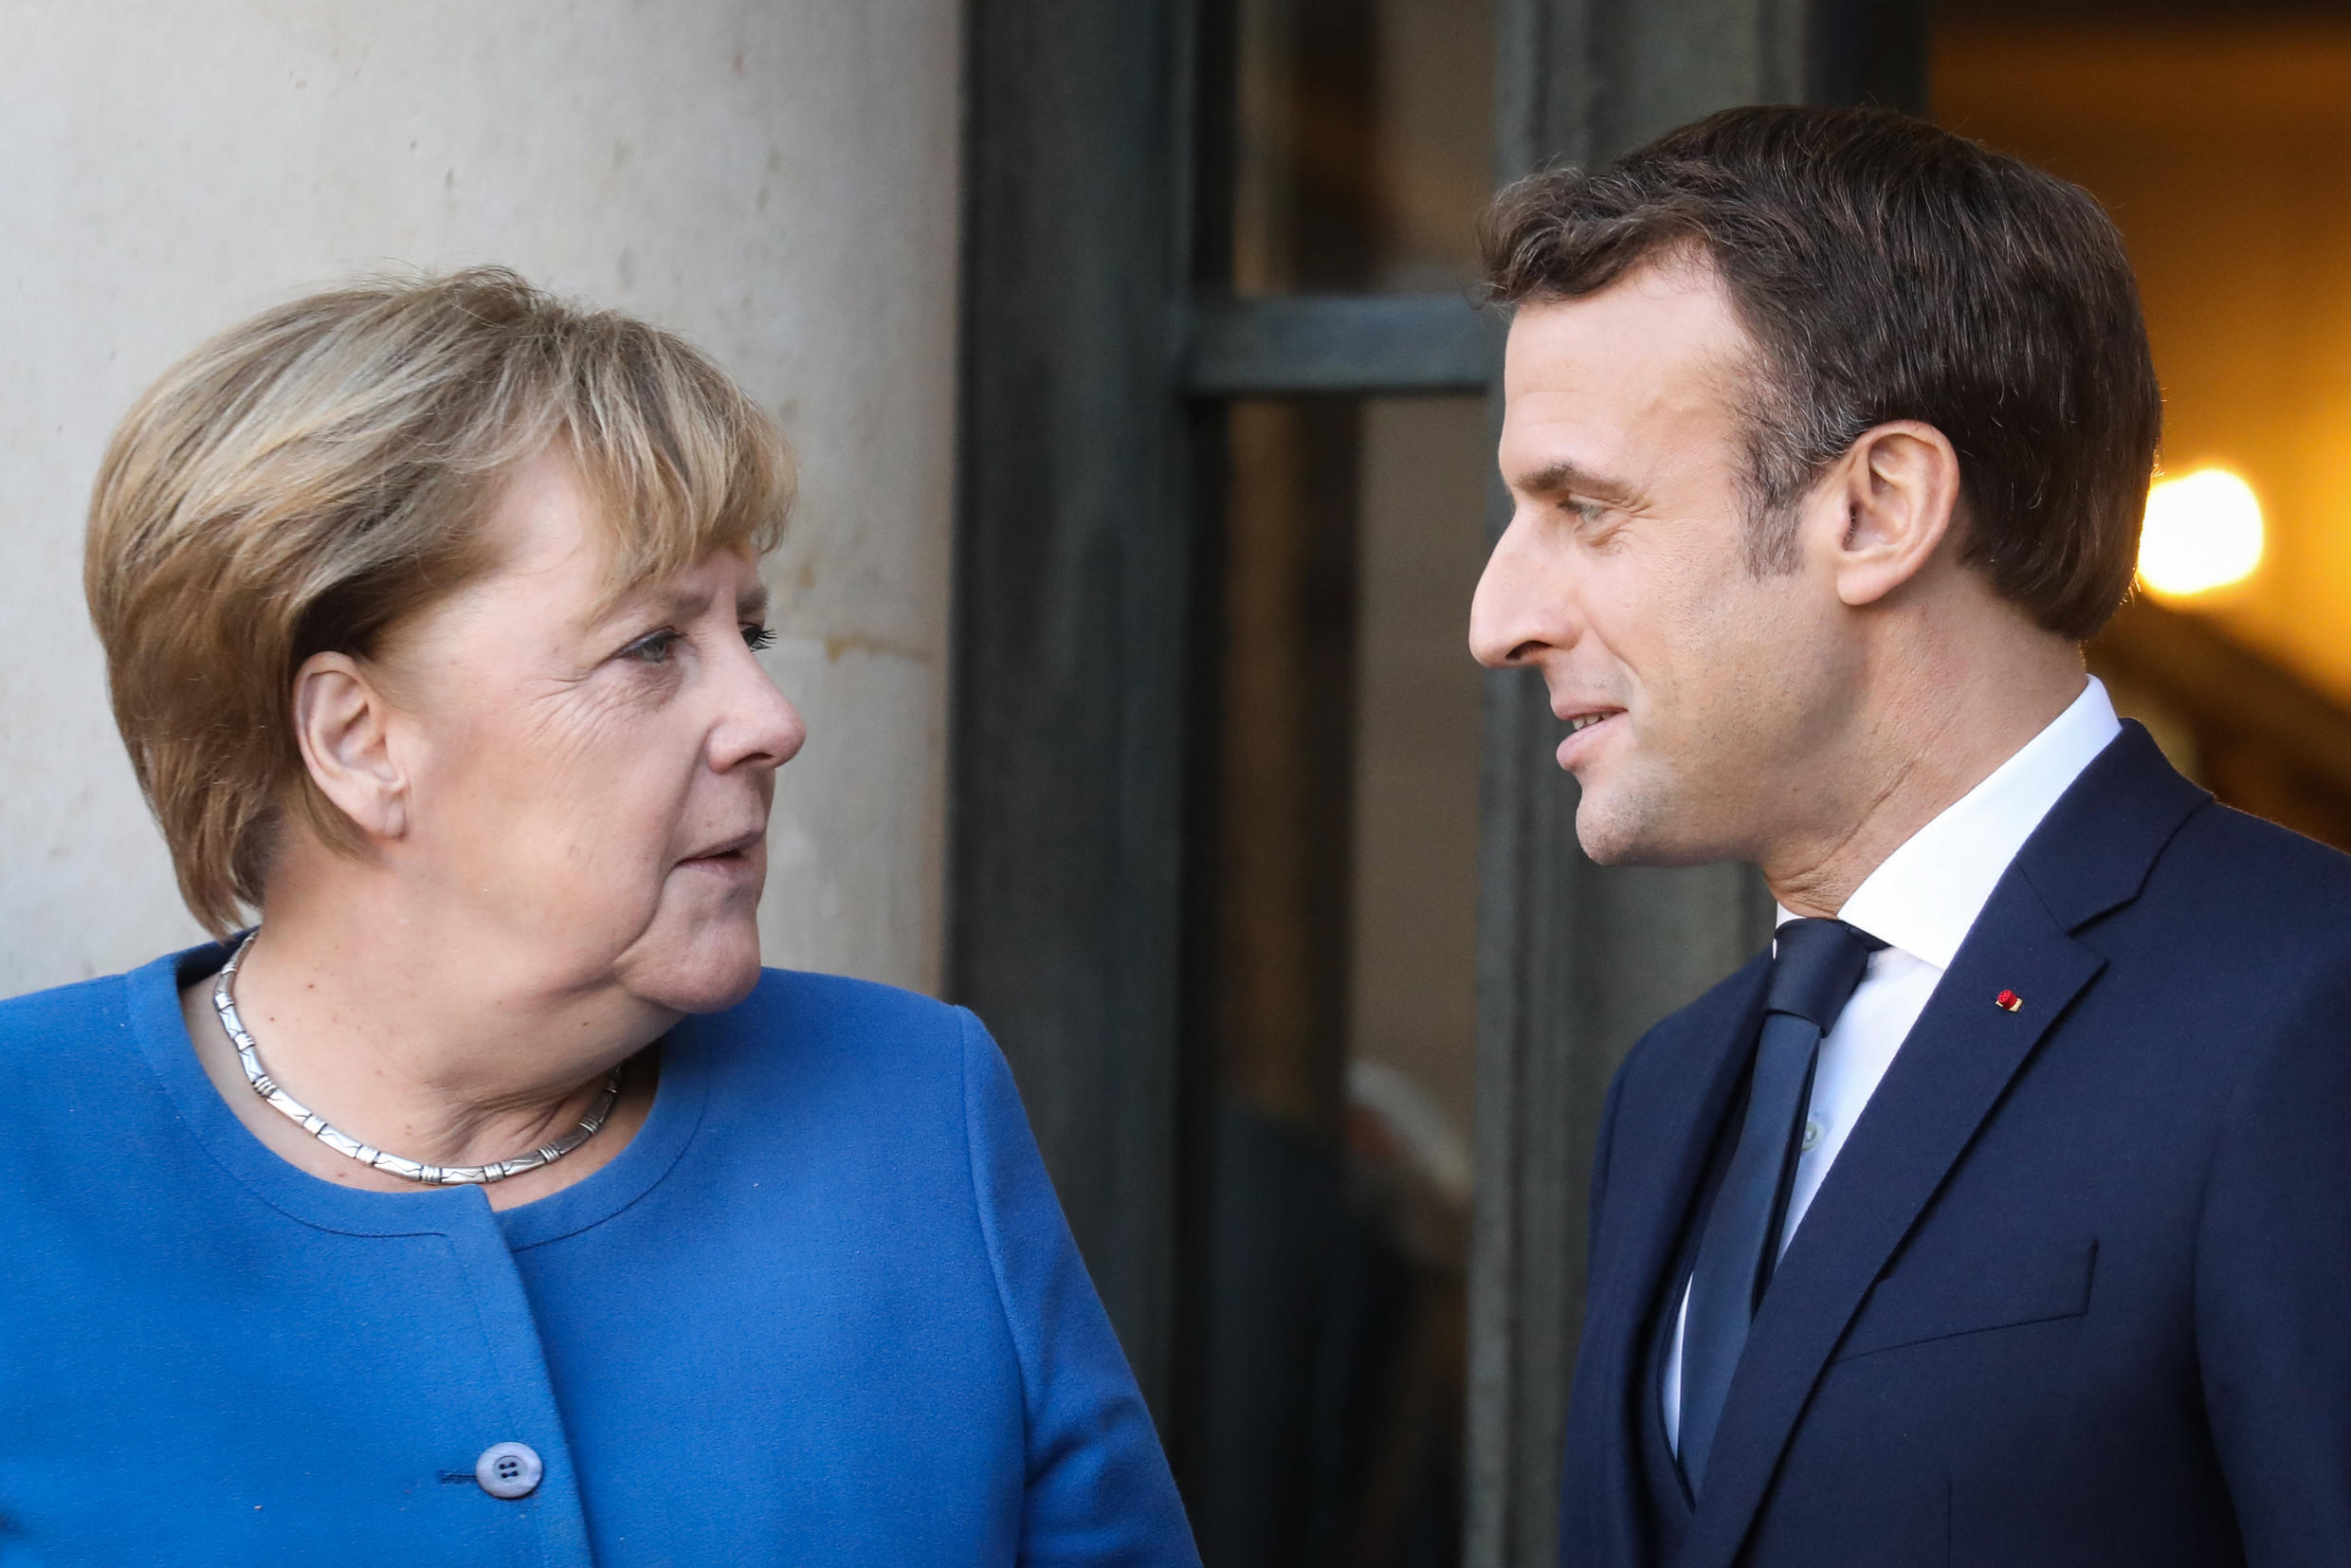 German Chancellor Angela Merkel and France's Emmanuel Macron will meet on Monday with some weighty issue at stake